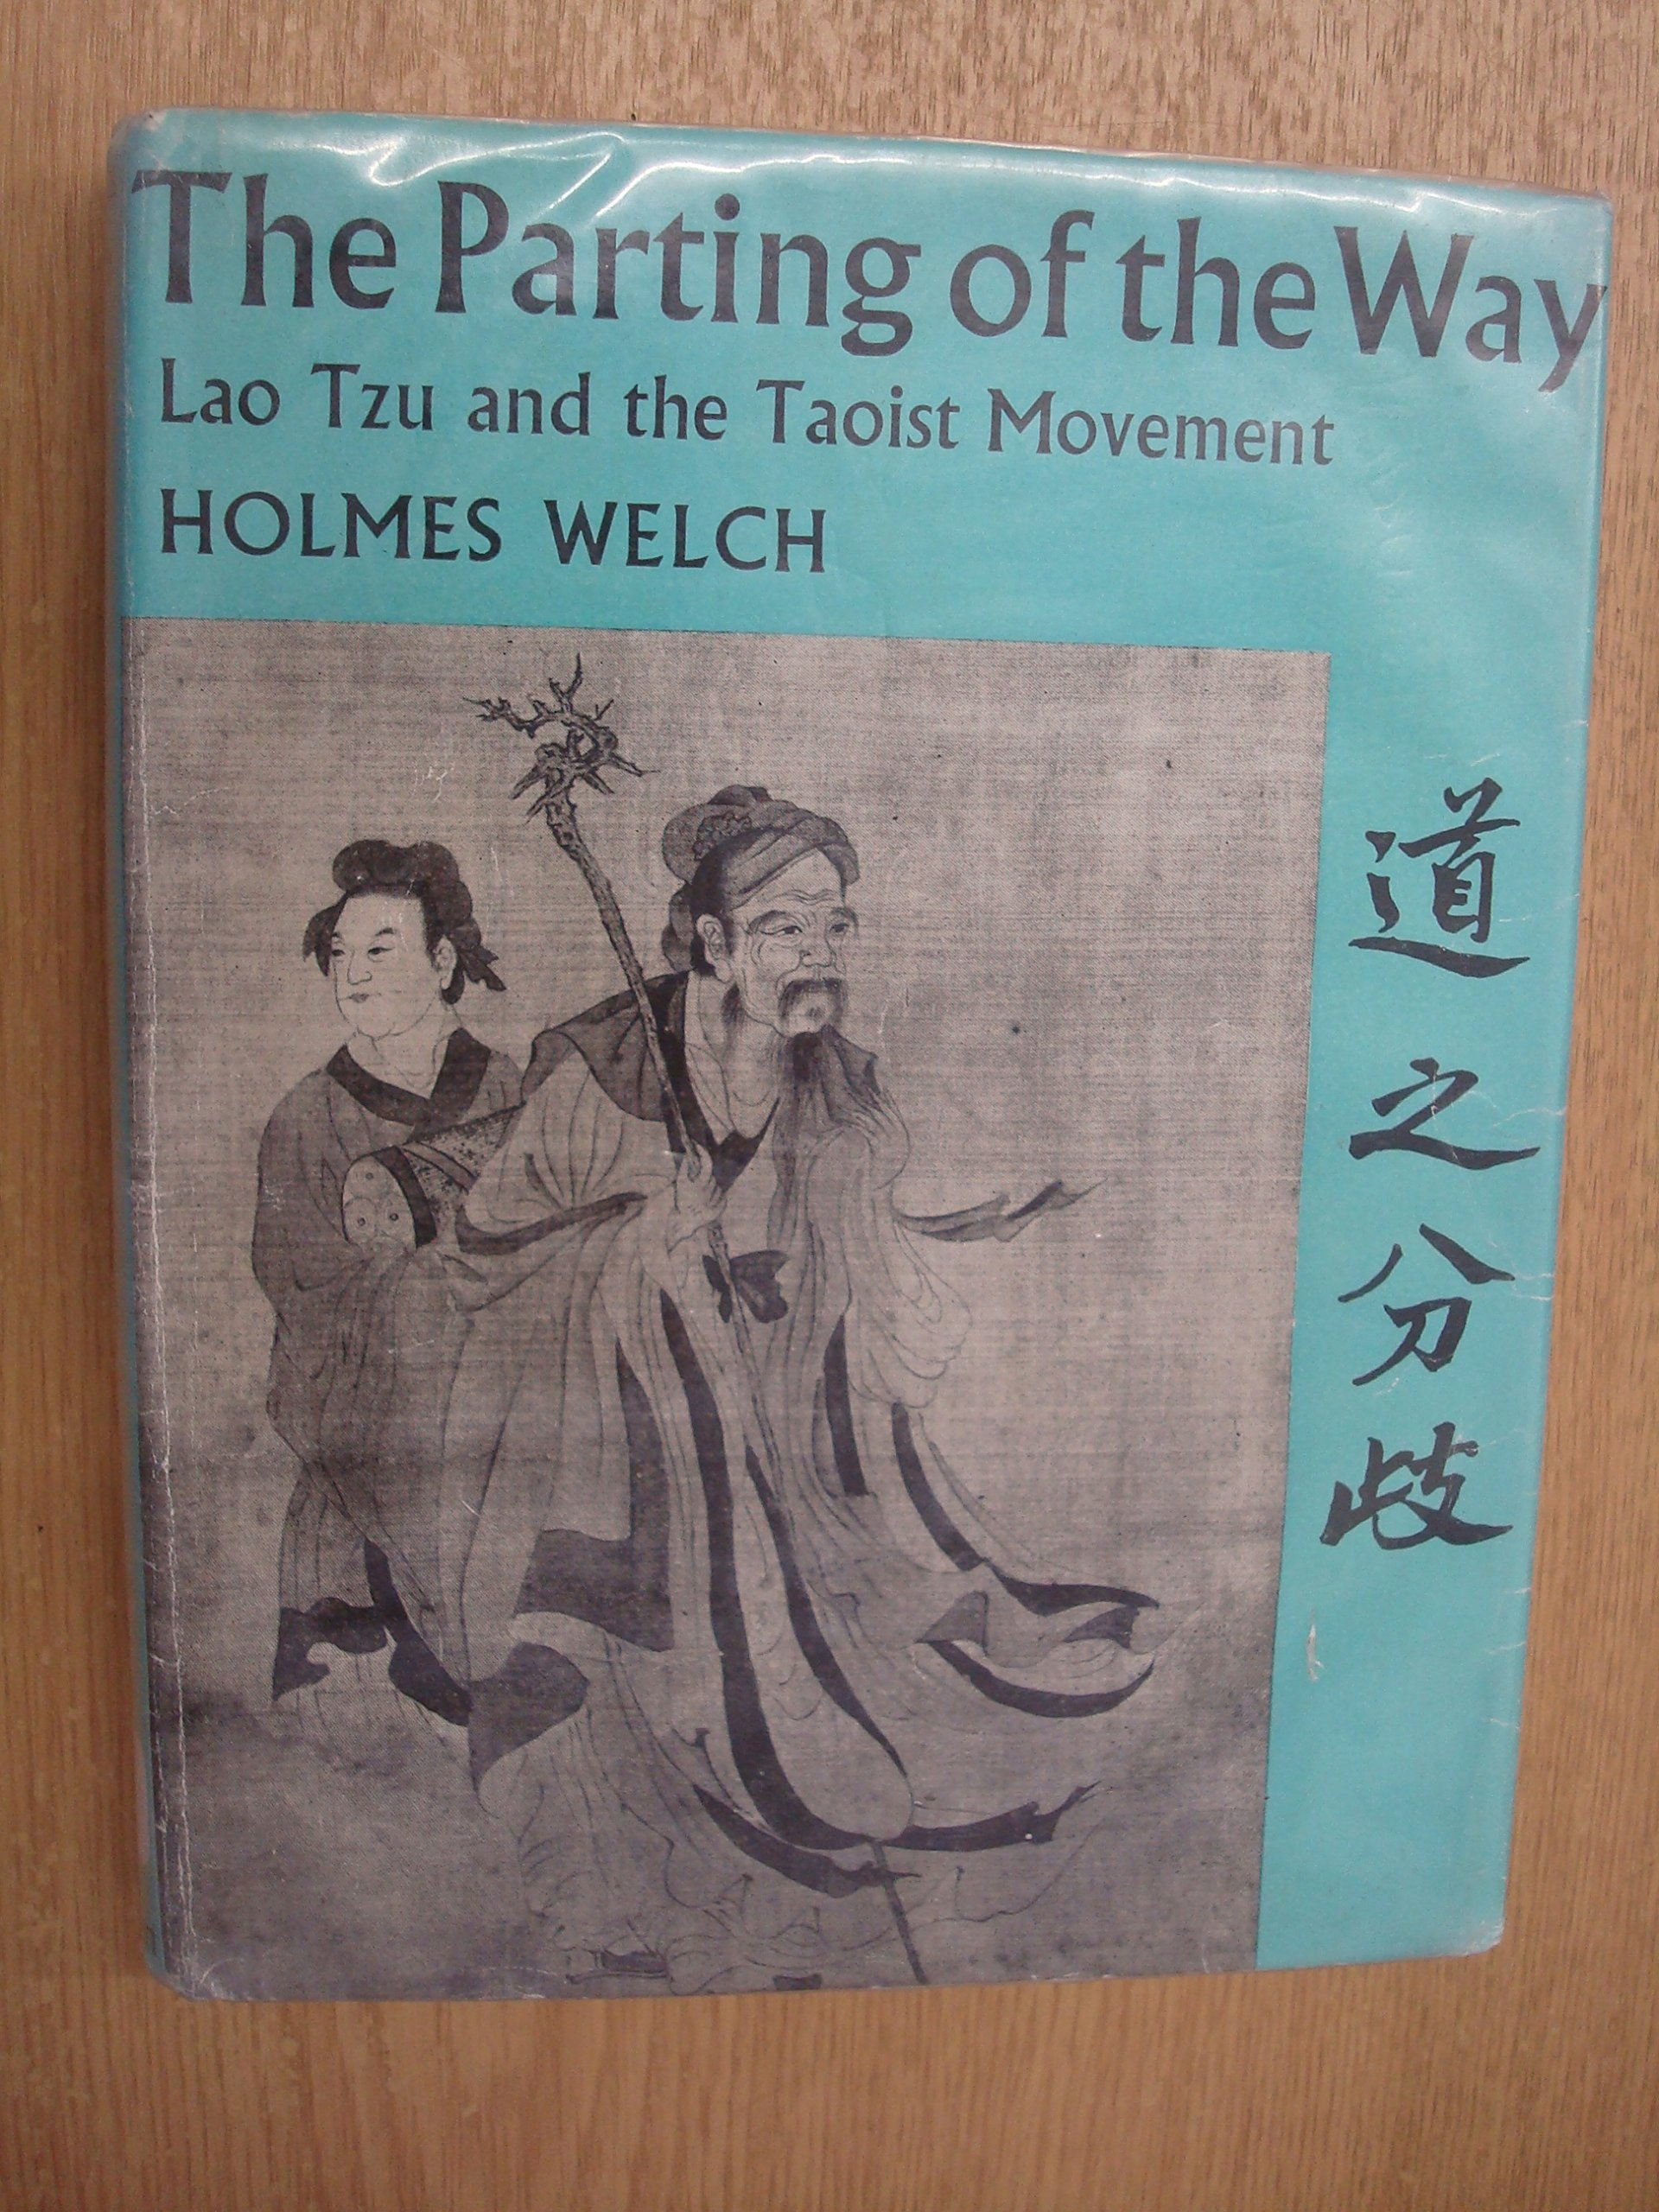 THE PARTING OF THE WAY. Lao Tzu and the Taoist Movement: HOLMES WELCH:  Books - Amazon.ca